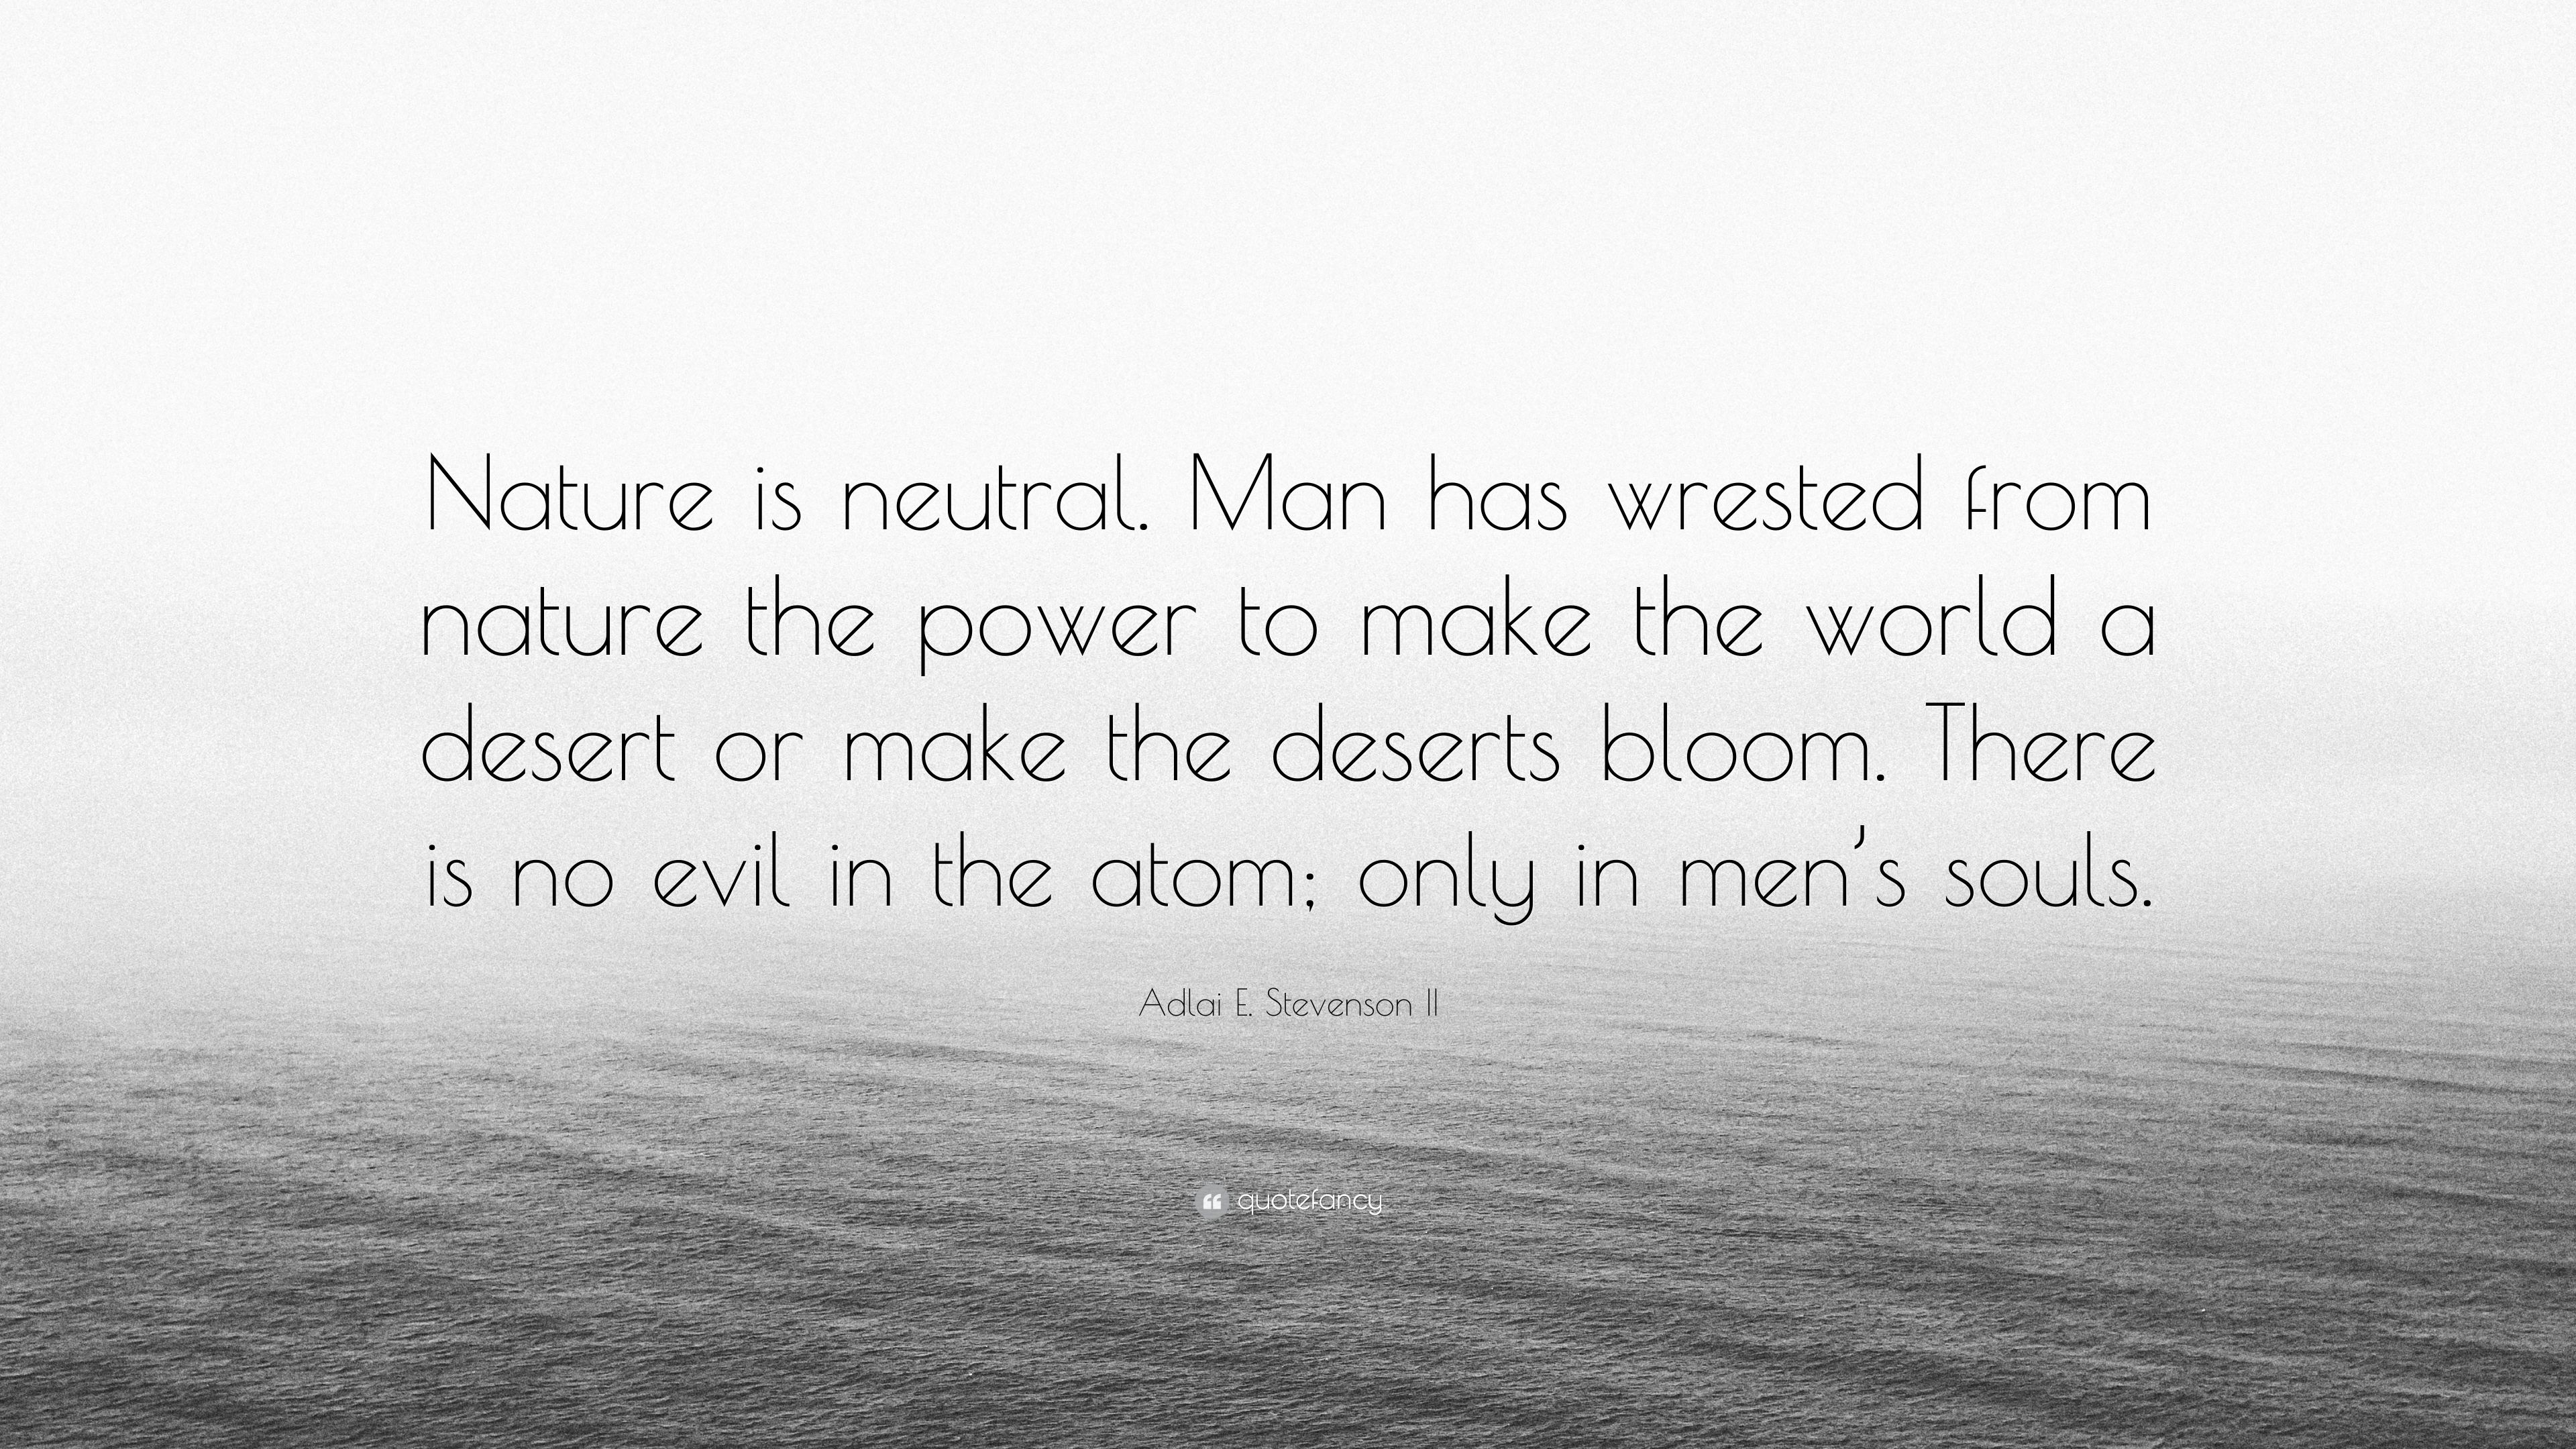 Adlai E Stevenson Ii Quote Nature Is Neutral Man Has Wrested From Nature The Power To Make The World A Desert Or Make The Deserts Bloom There Is 7 Wallpapers Quotefancy